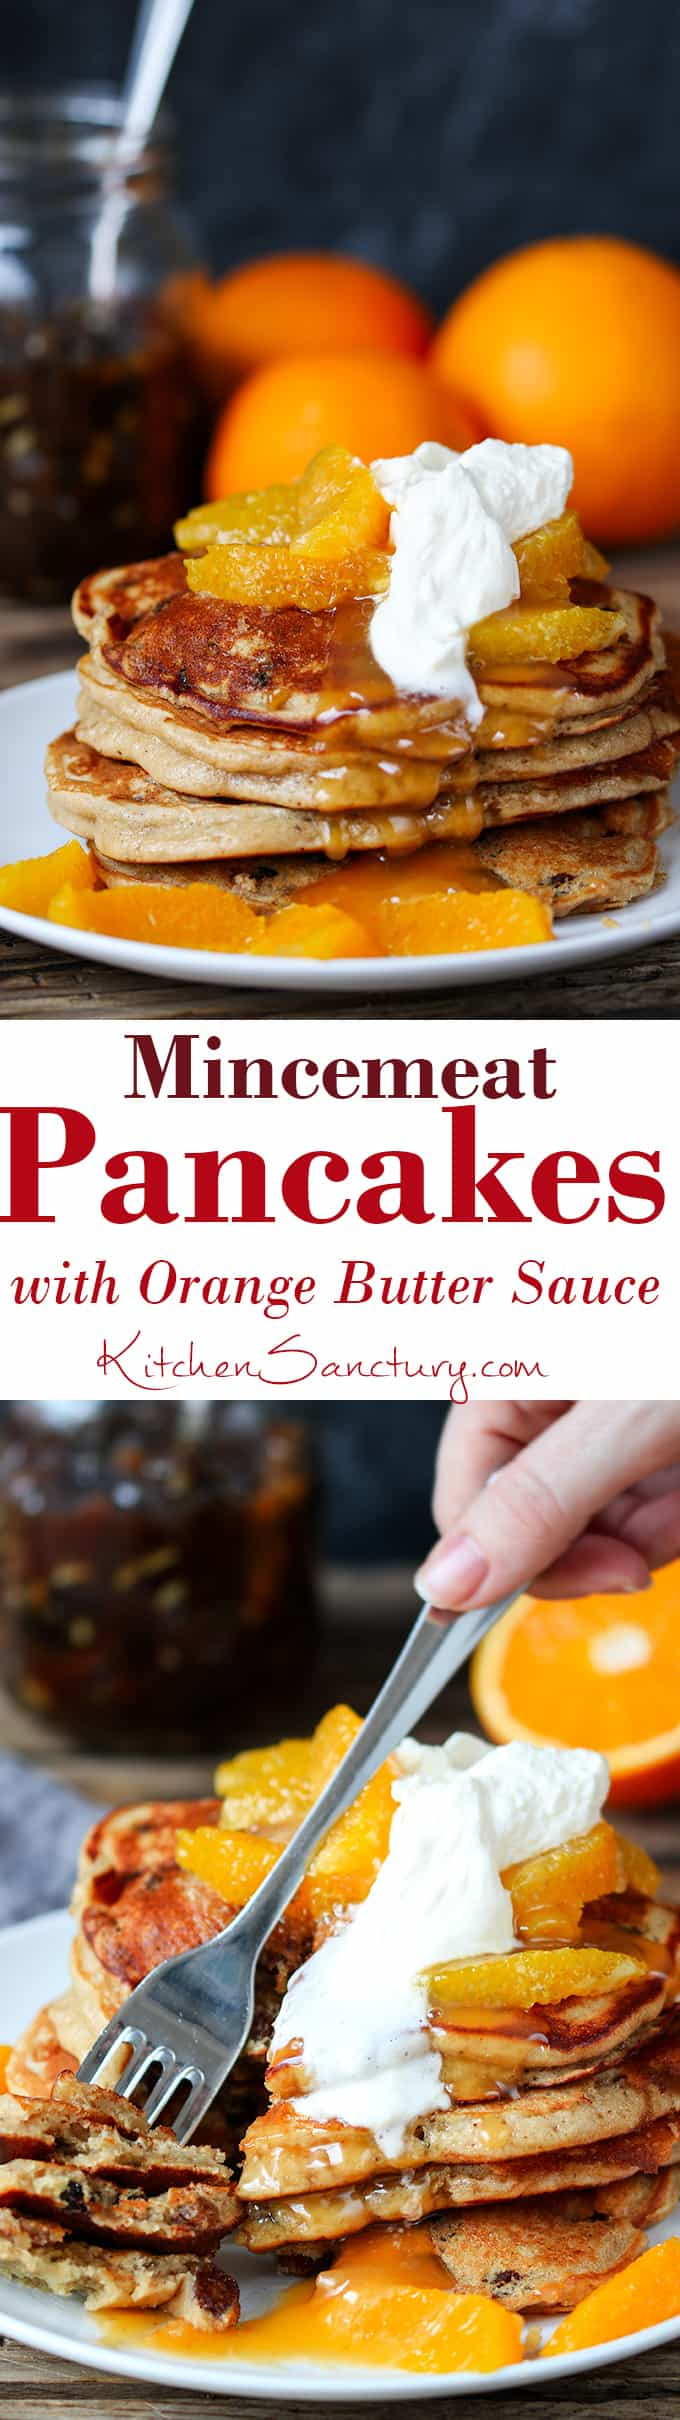 Mincemeat Pancakes with Orange Butter Sauce - A tasty breakfast to use up that leftover sweet mince pie filling!